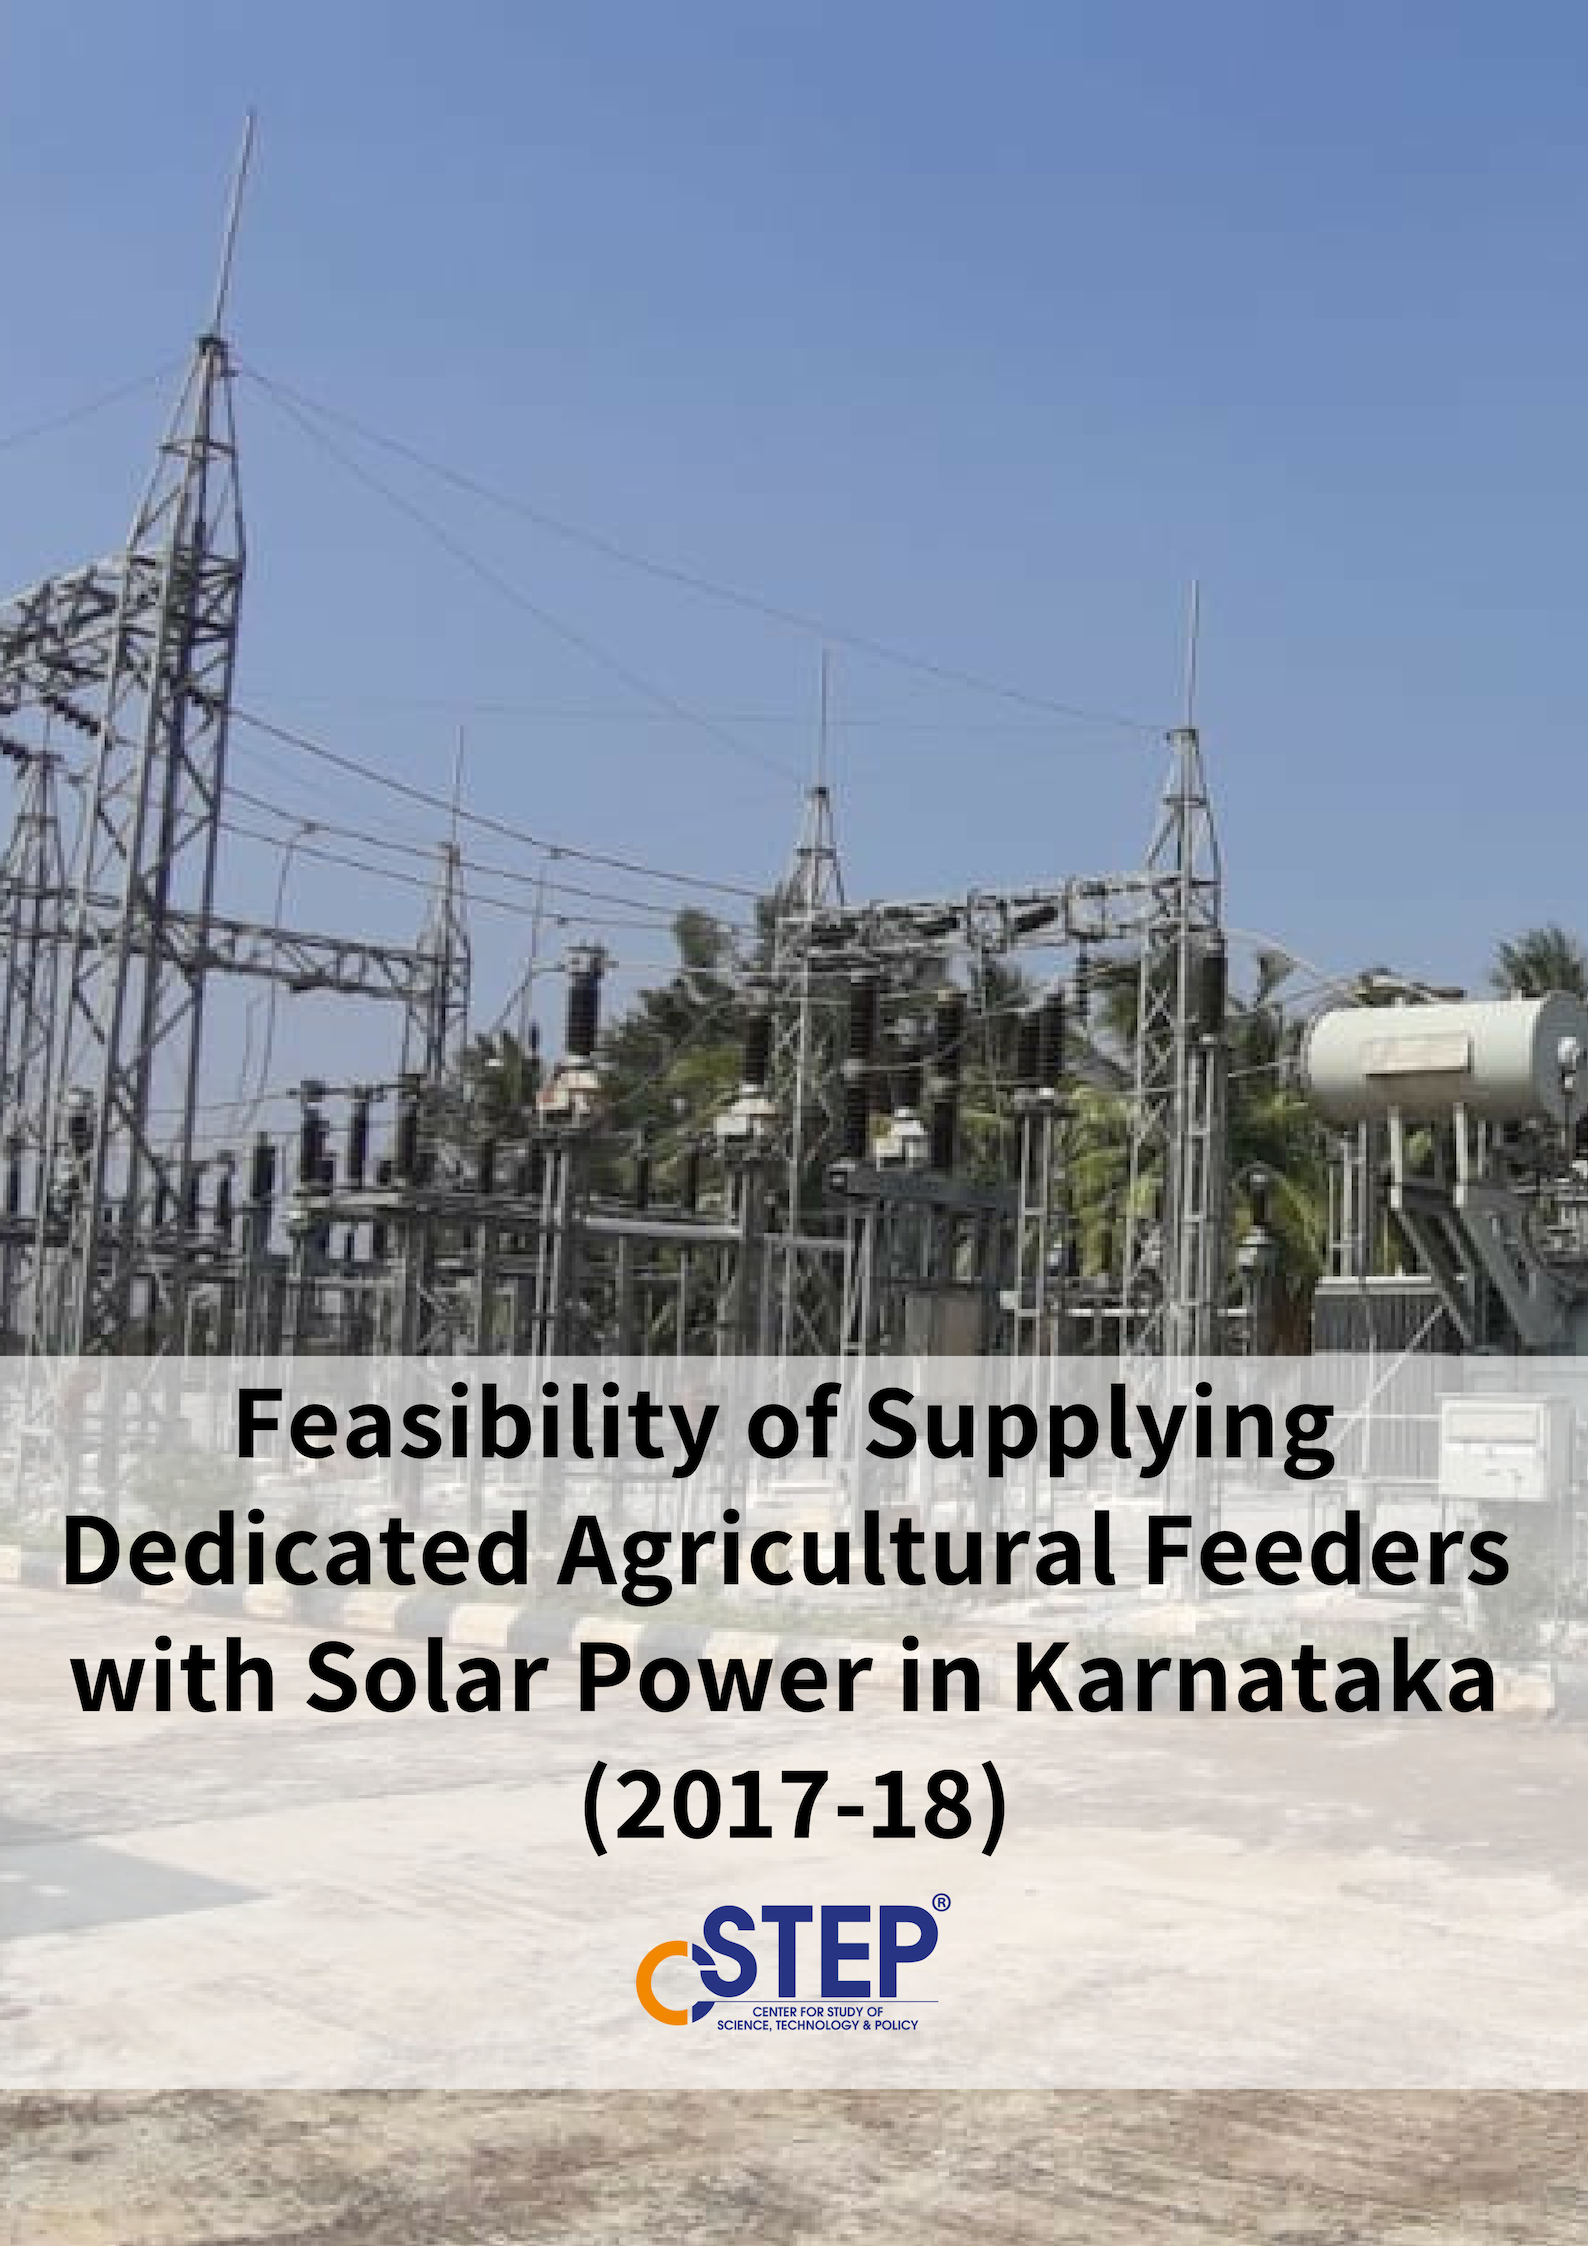 Feasibility of Supplying Dedicated Agricultural Feeders with Solar Power in Karnataka